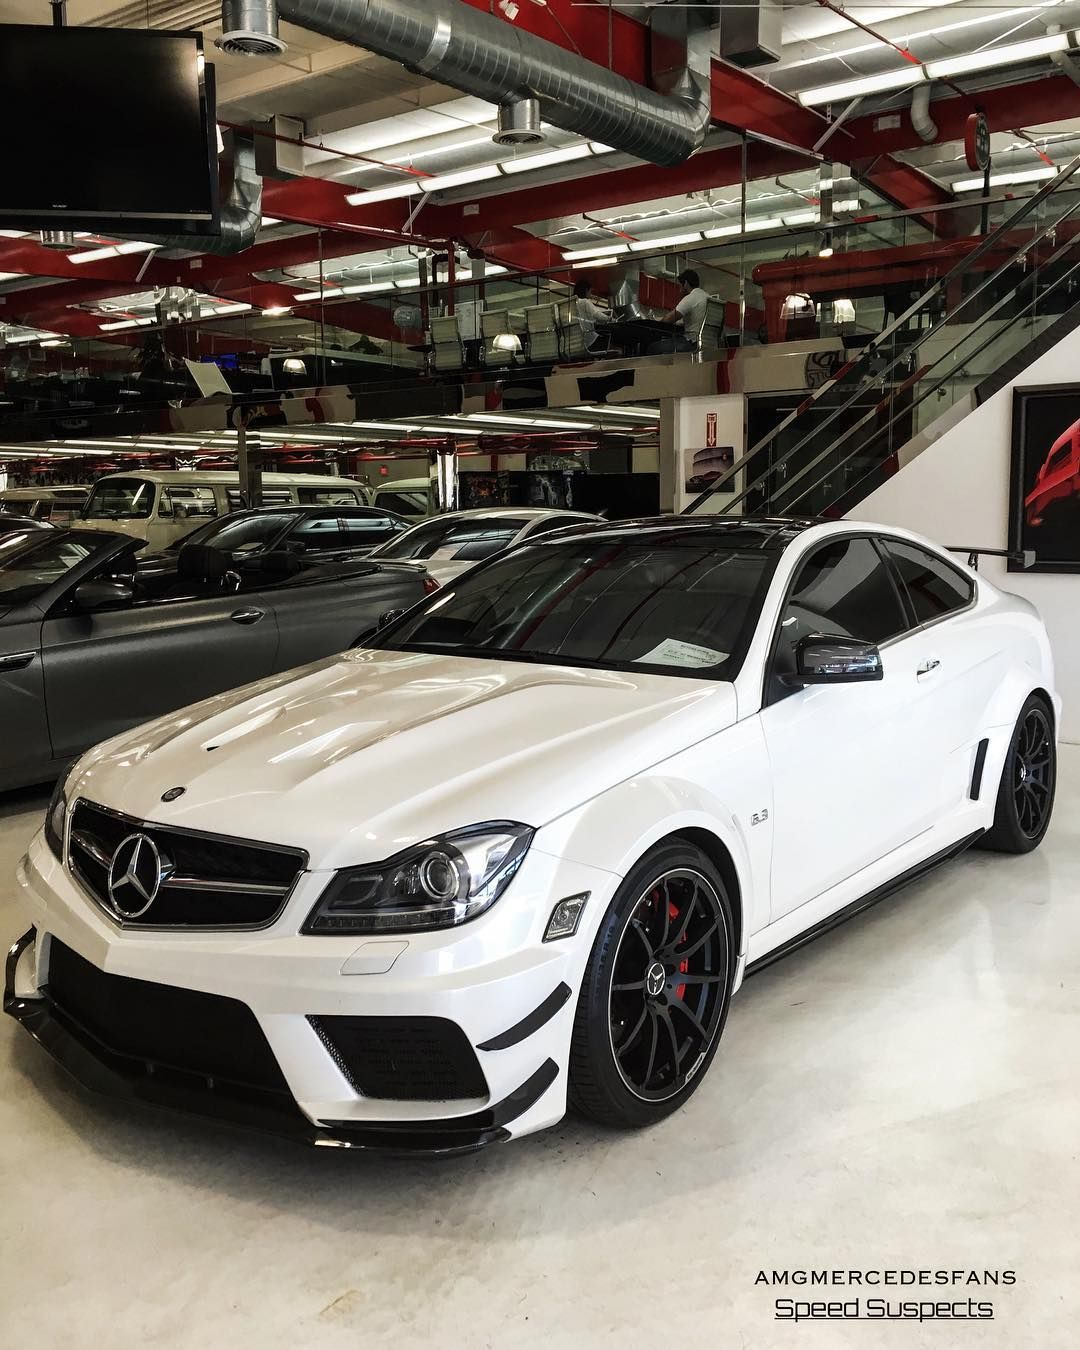 c63 amg black serie speedsuspects by amgmercedesfans mercedes amg c 63 fuel consumption. Black Bedroom Furniture Sets. Home Design Ideas